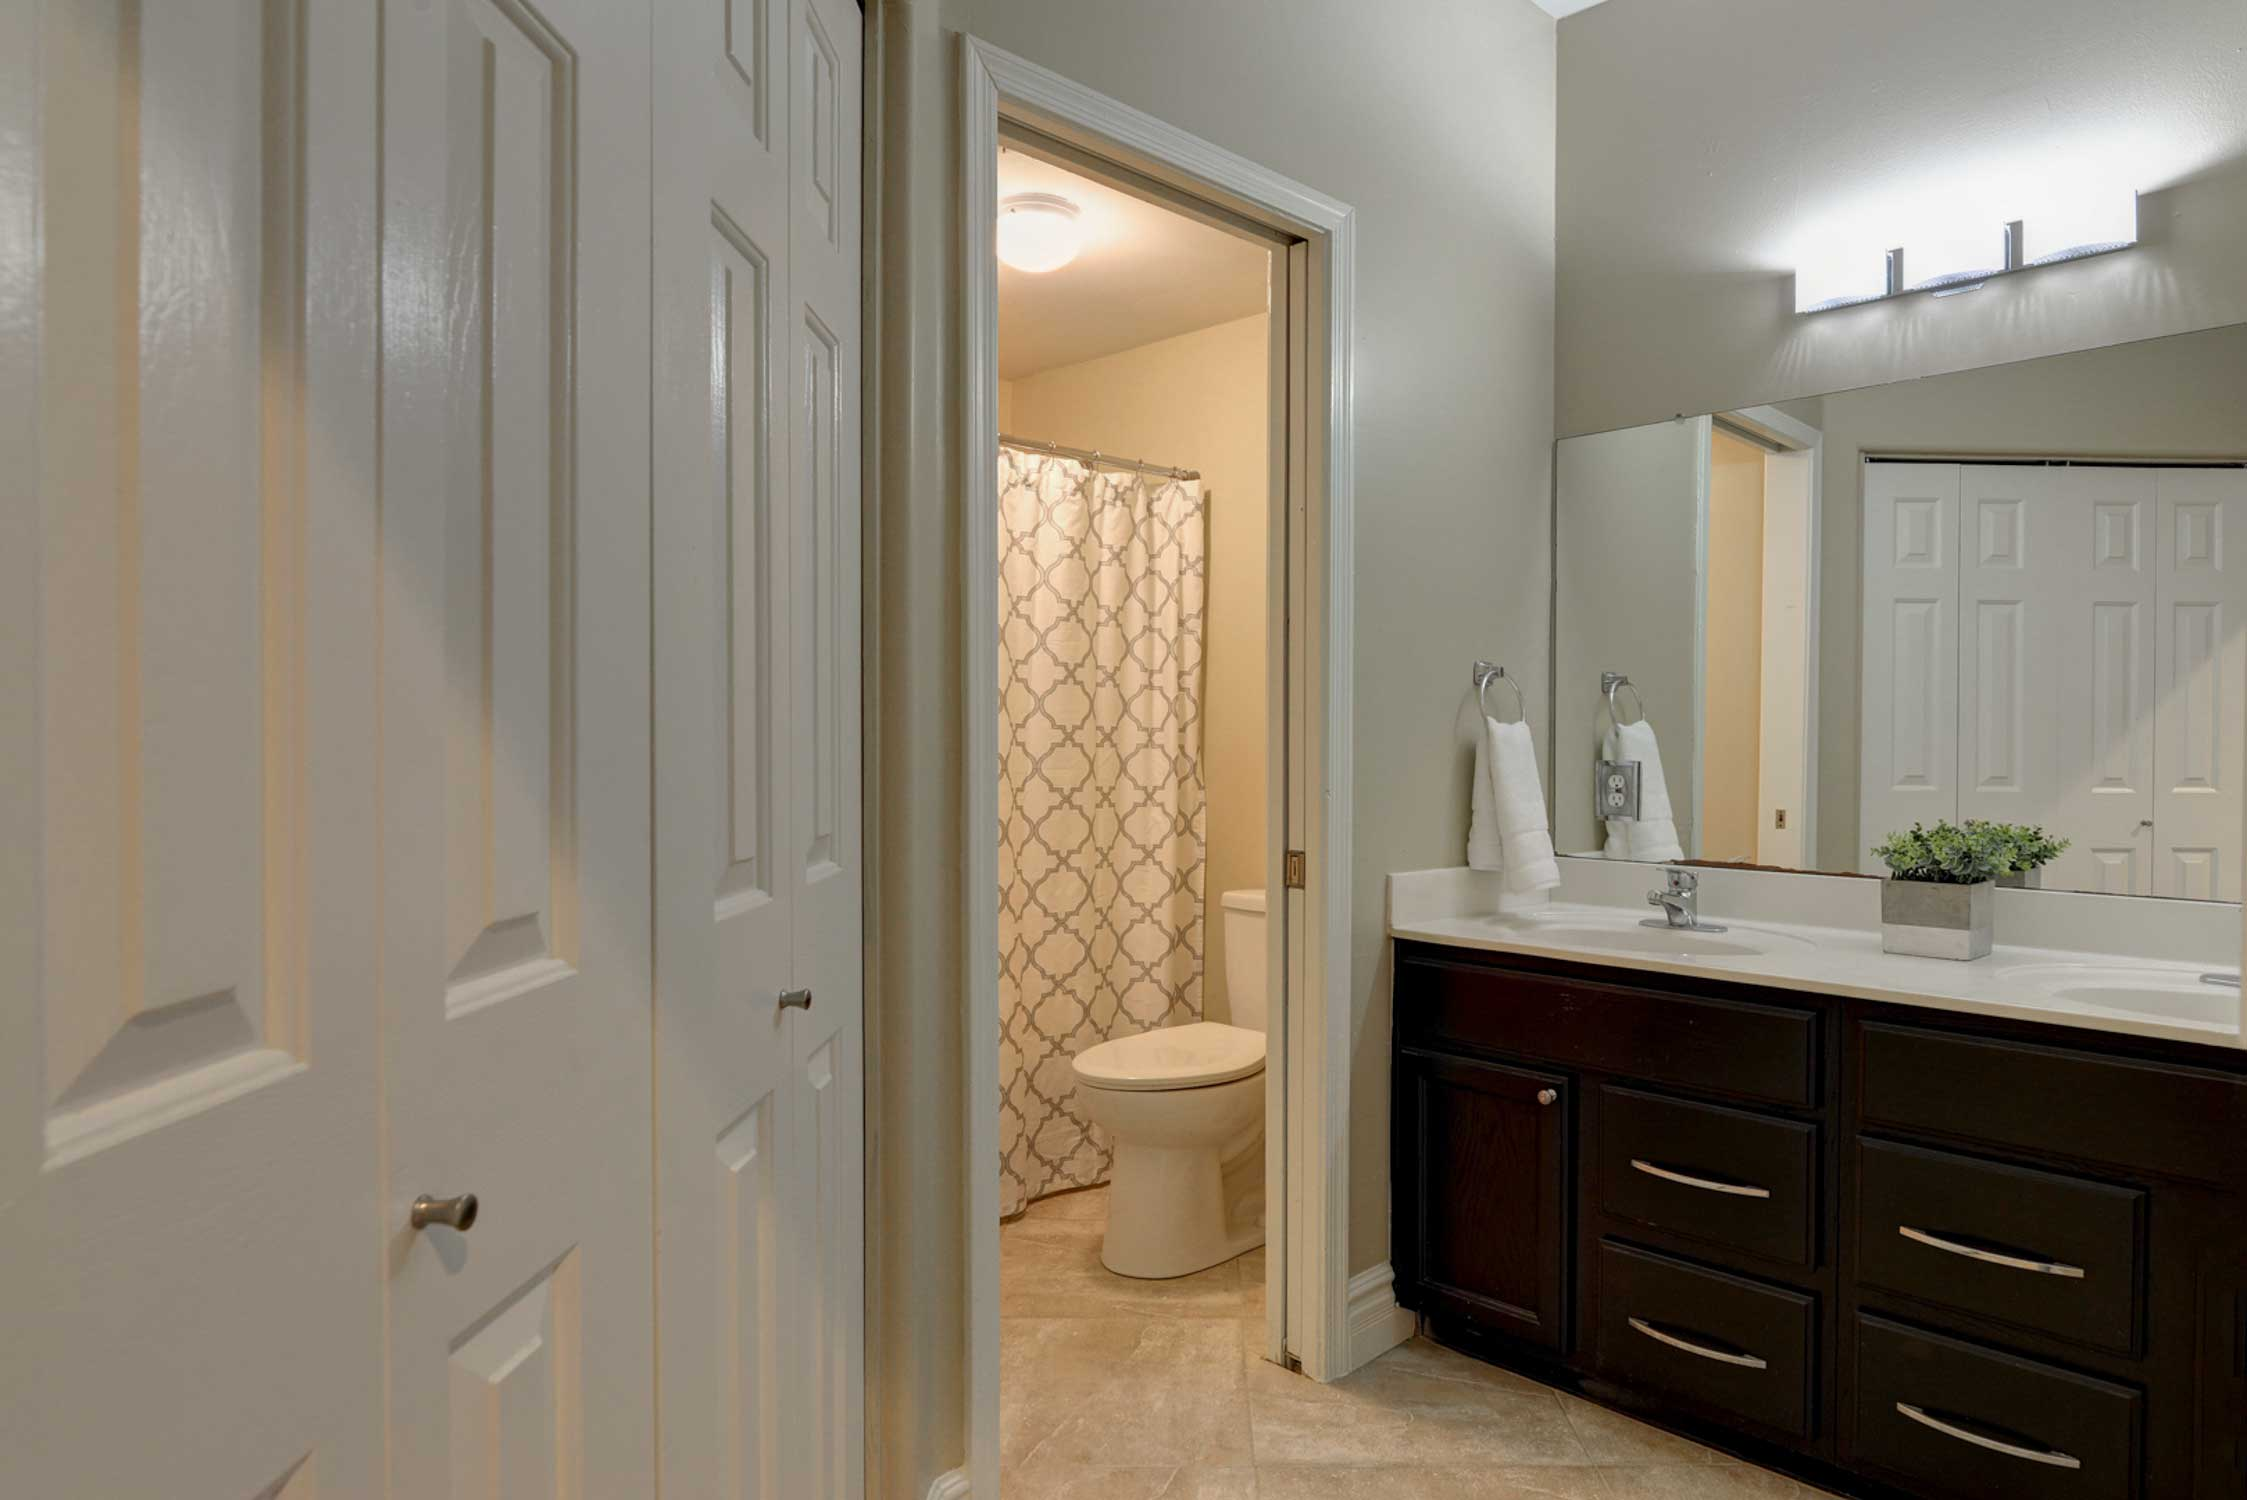 This bathroom includes a large vanity with 2 sinks.